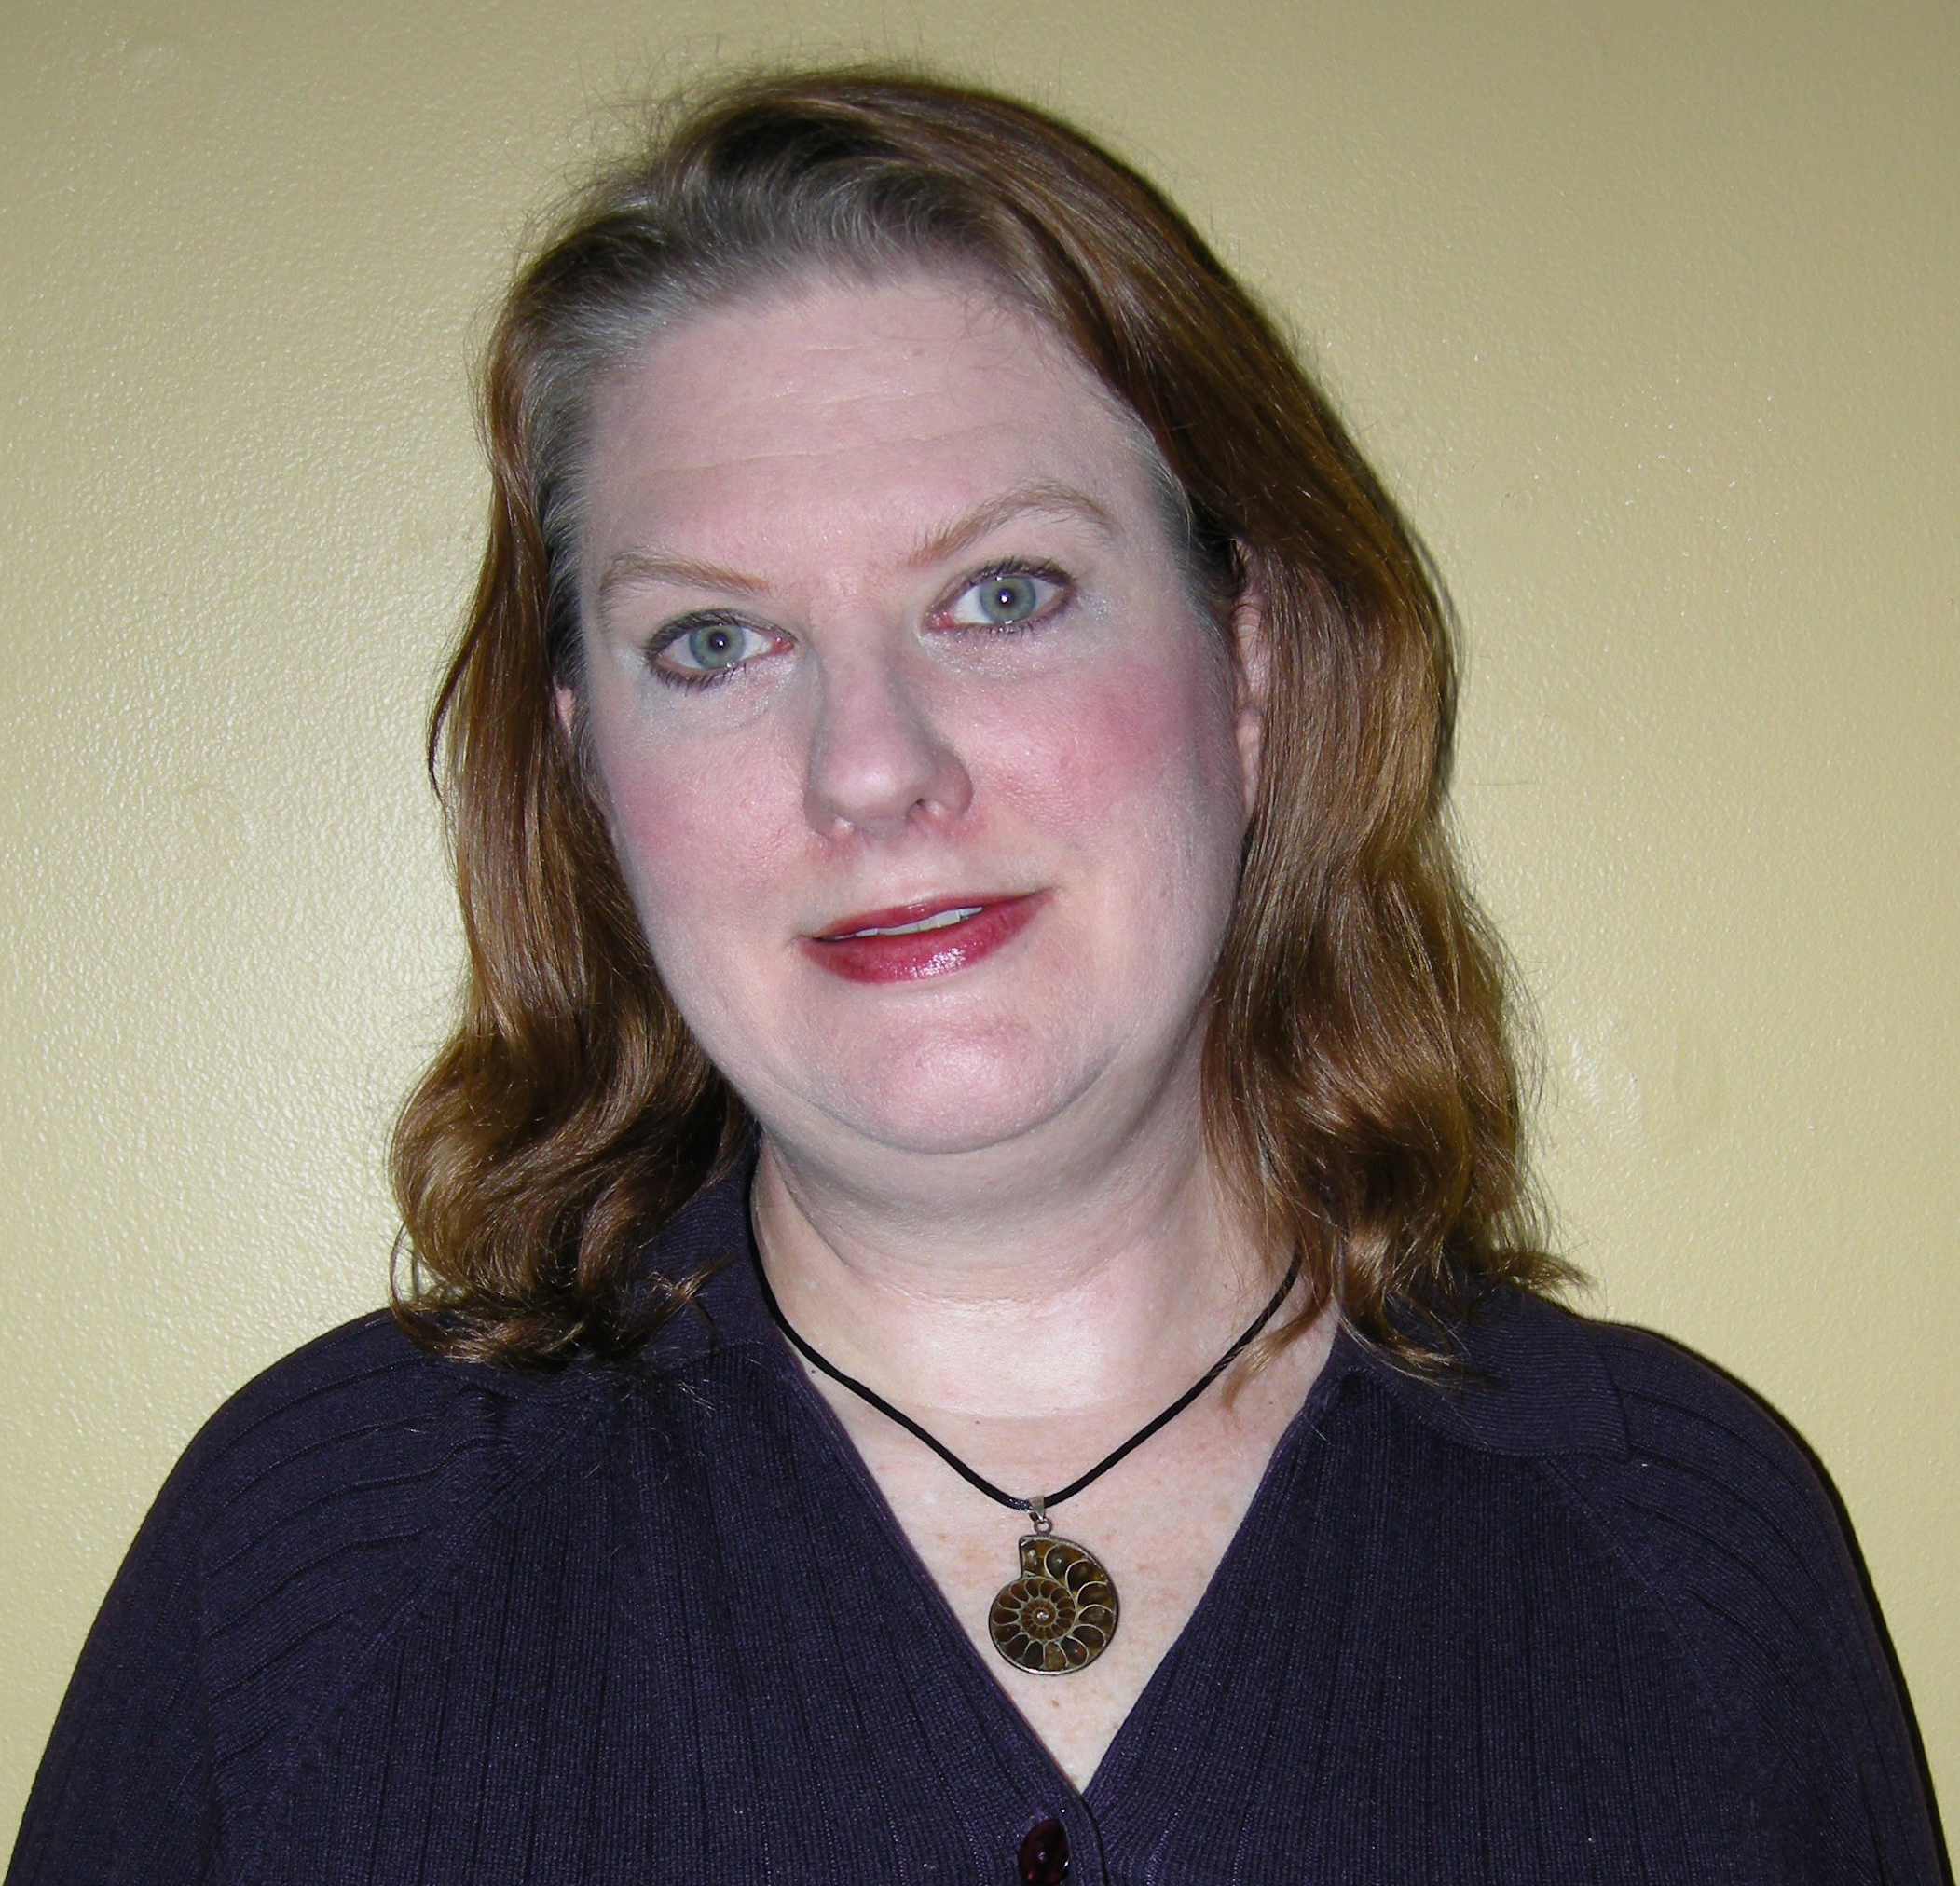 Heather West Pr Client News Kolbe Highlights Both: Heather West Public Relations :: Tubelite Adds EHS Manager